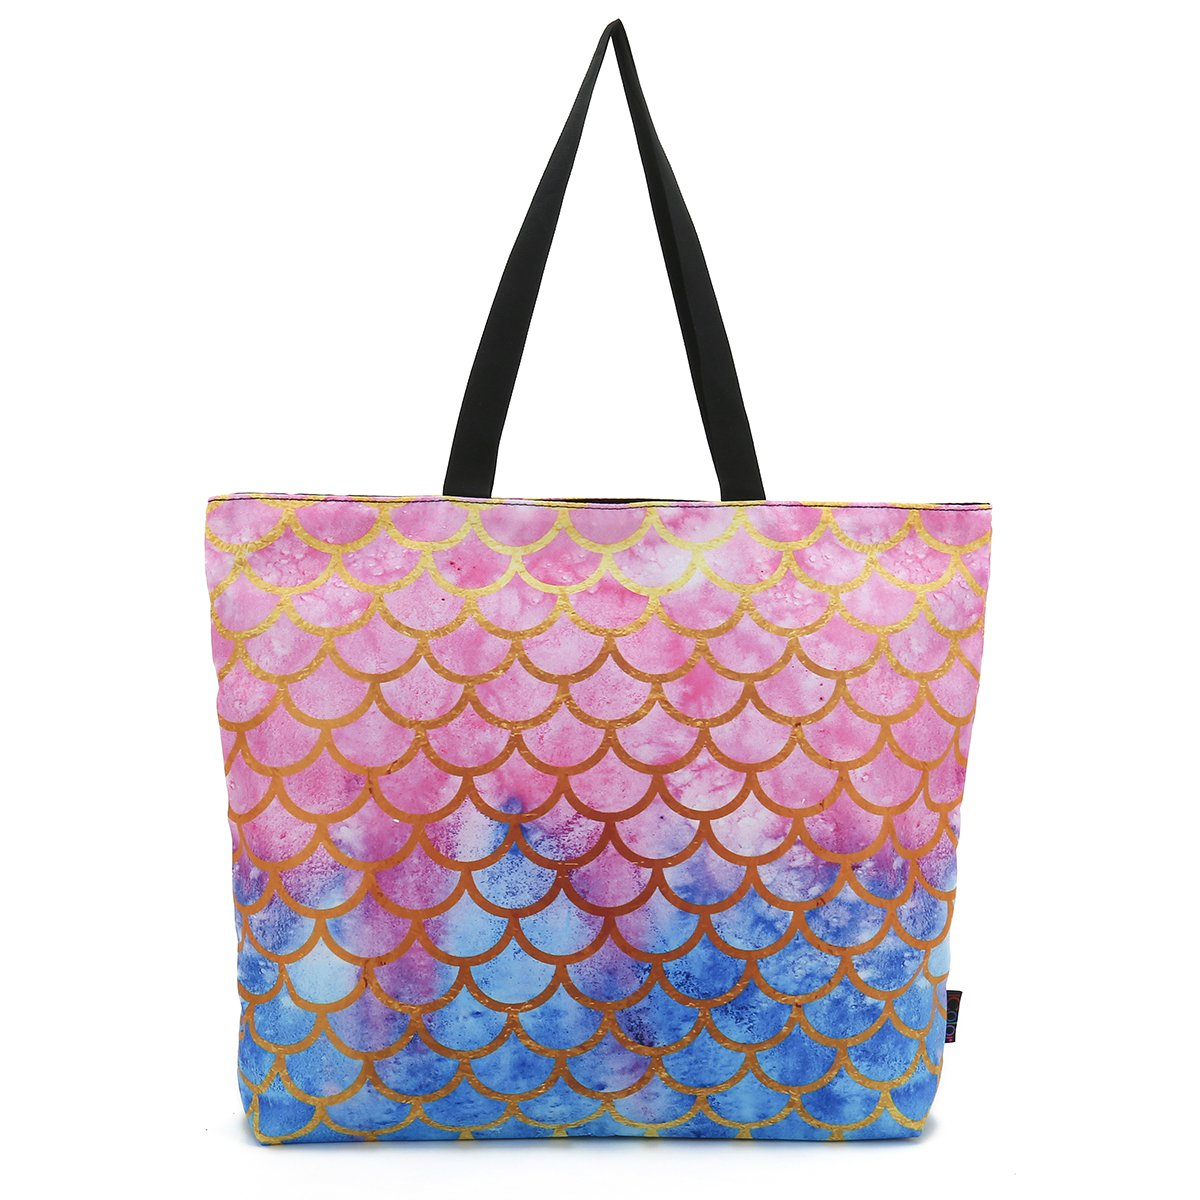 ICOLOR Mermaid Large Eco Reusable Eco-Friendly Shopping Bag